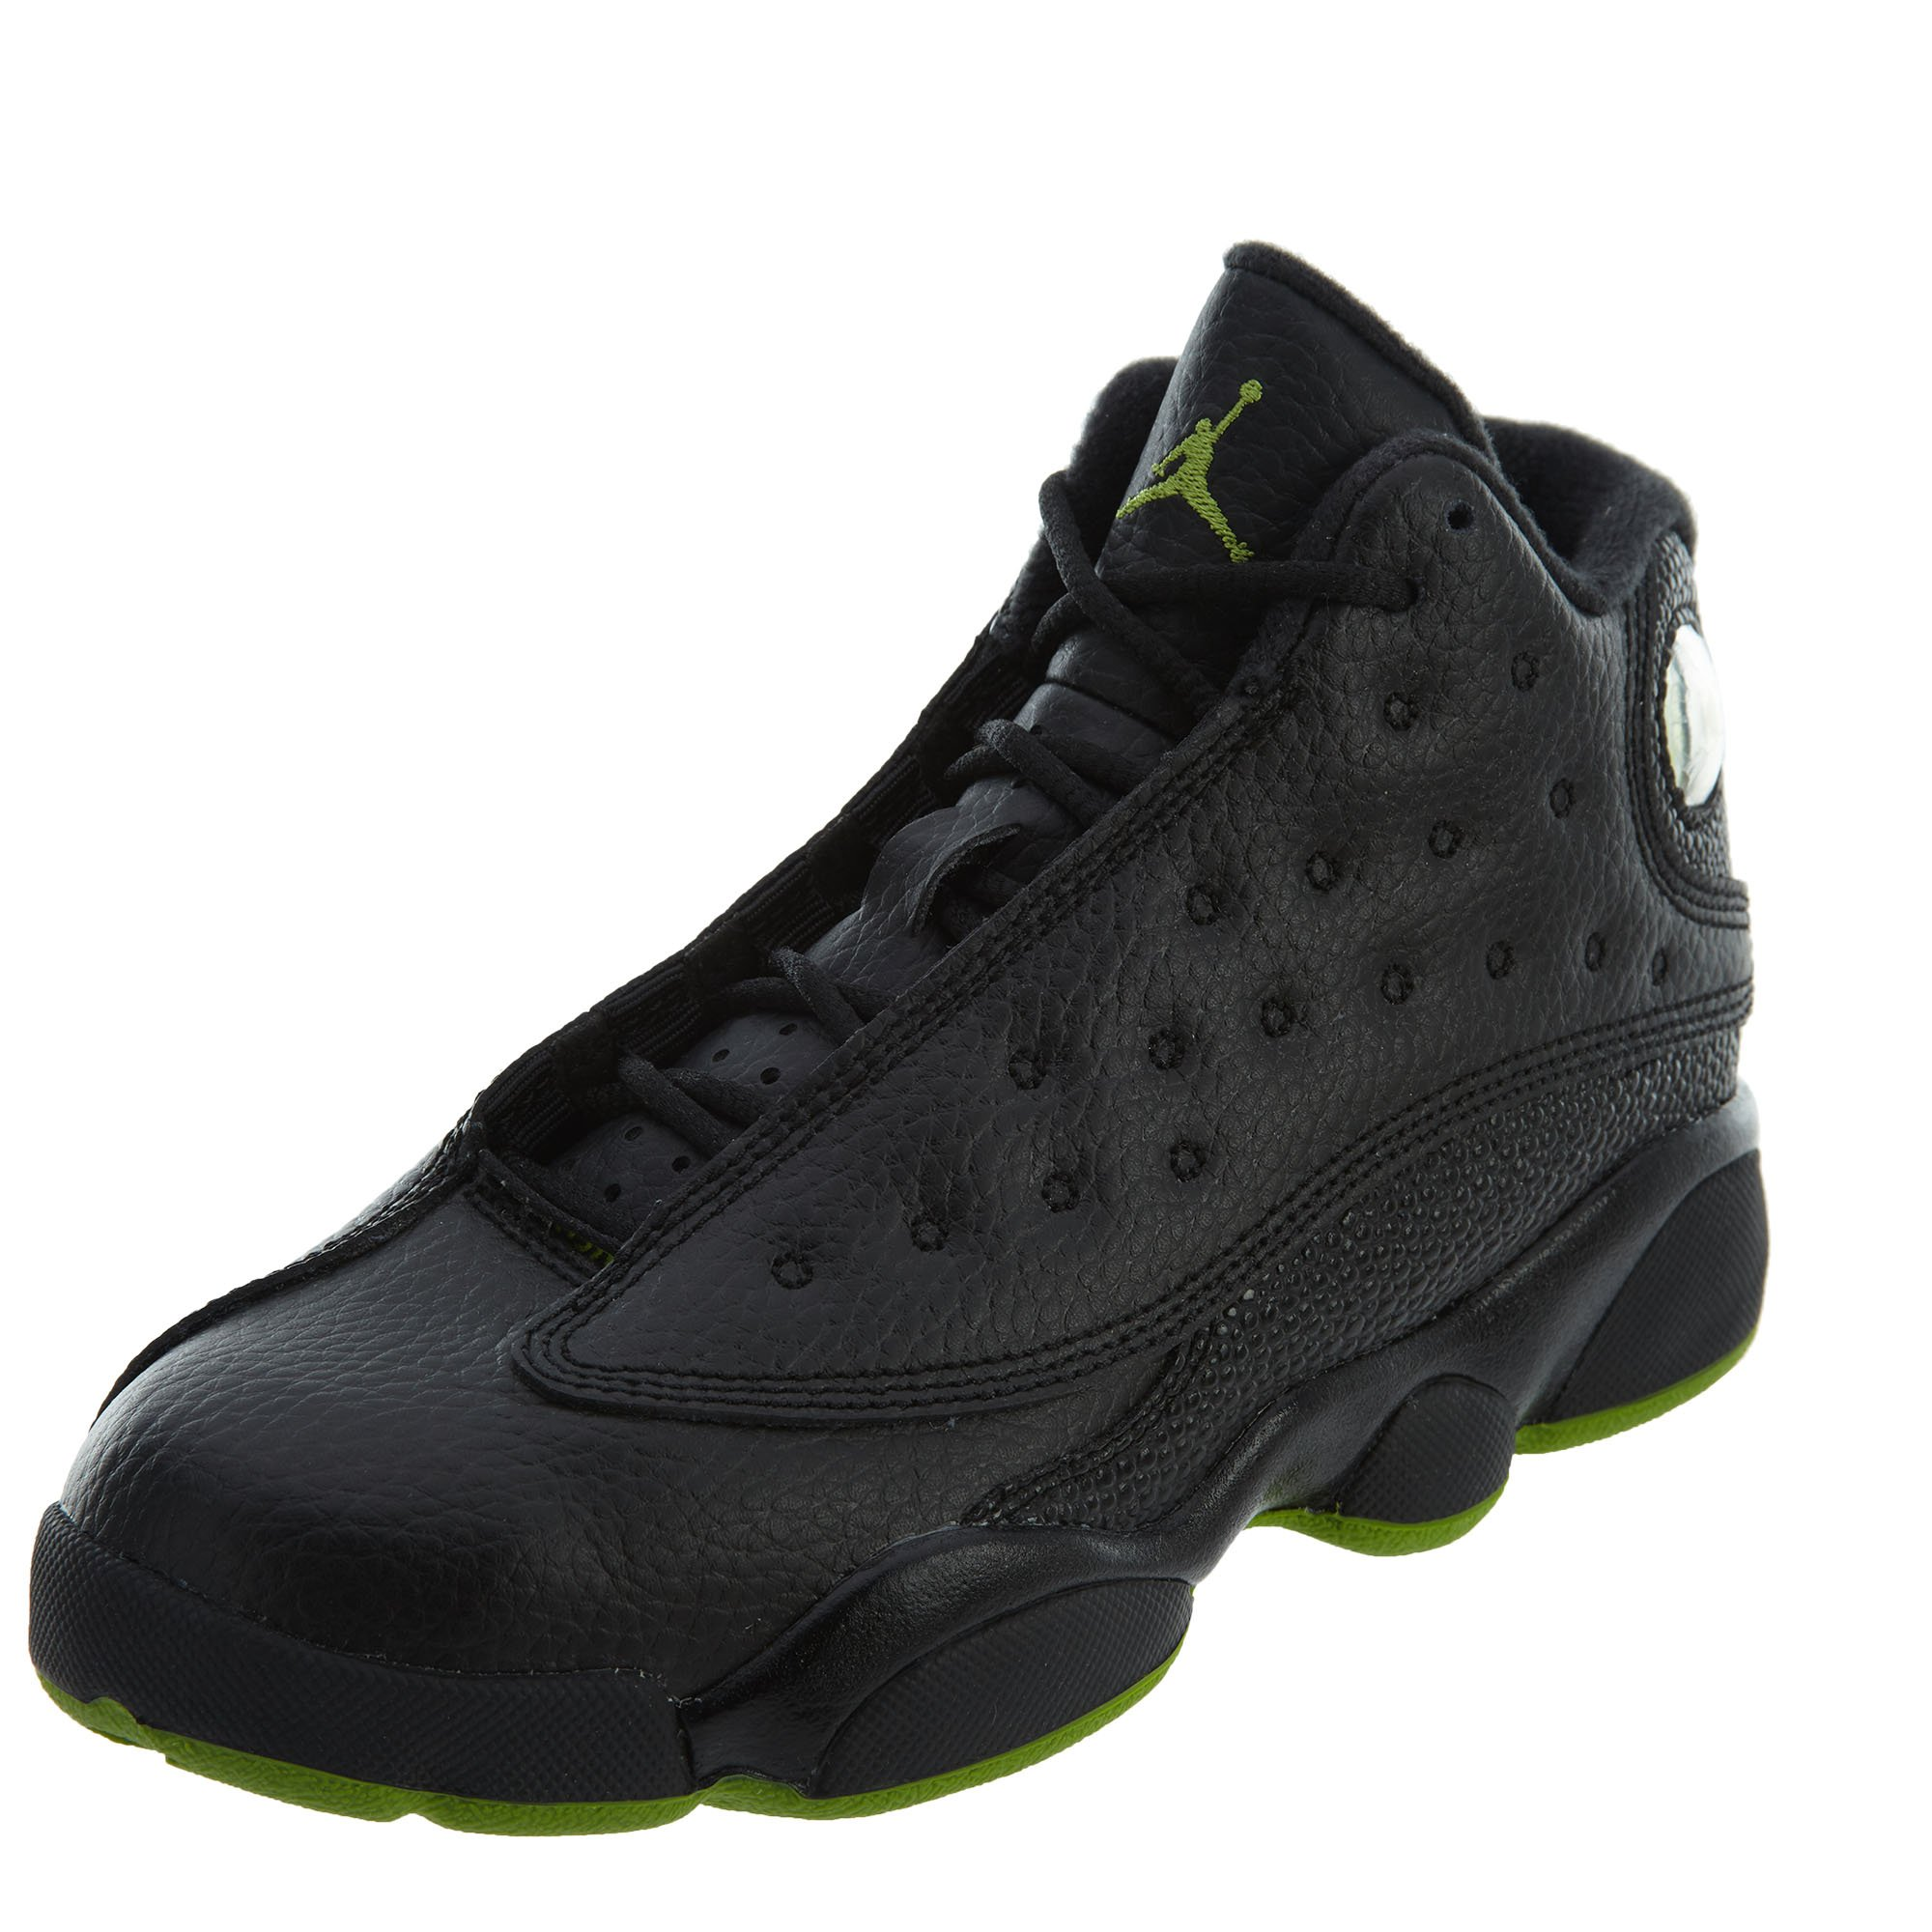 Jordan Retro 13'' Altitude Black/Altitude Green-White (Little Kid) (12.5 M US) by NIKE